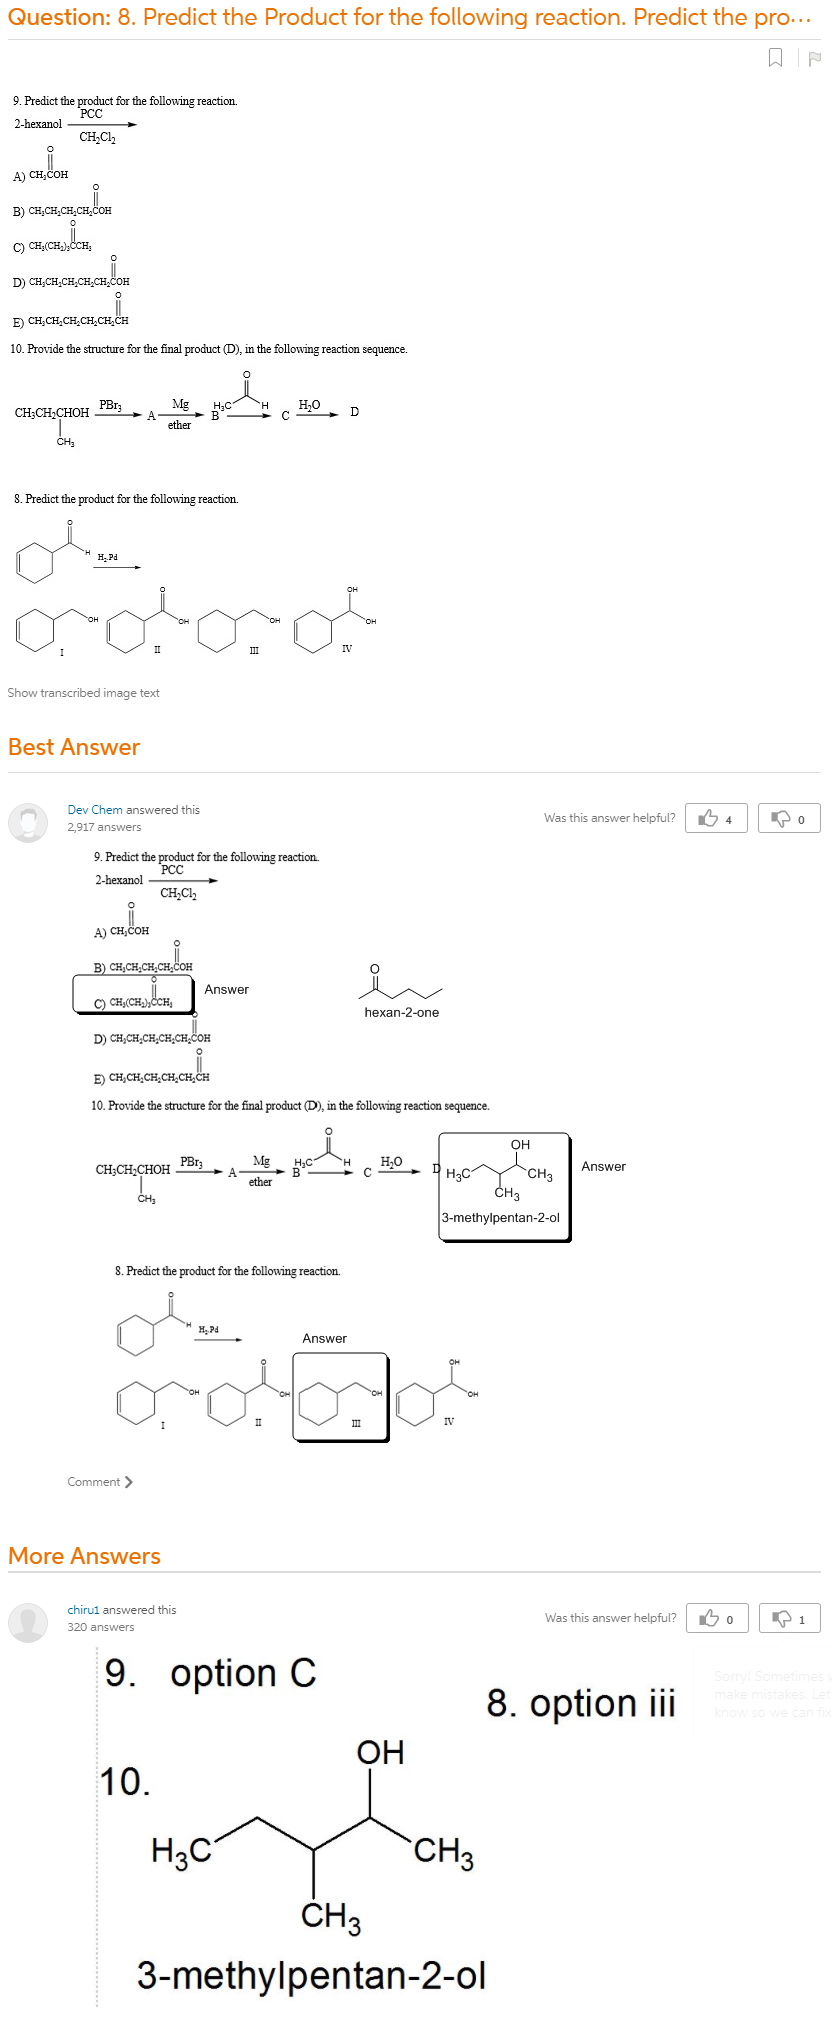 8. Predict The Product For The Following Reaction. Predict The Product For  The Following Reaction. Provide The Structure For The Final Product (D), In  The Following Reaction Sequence.